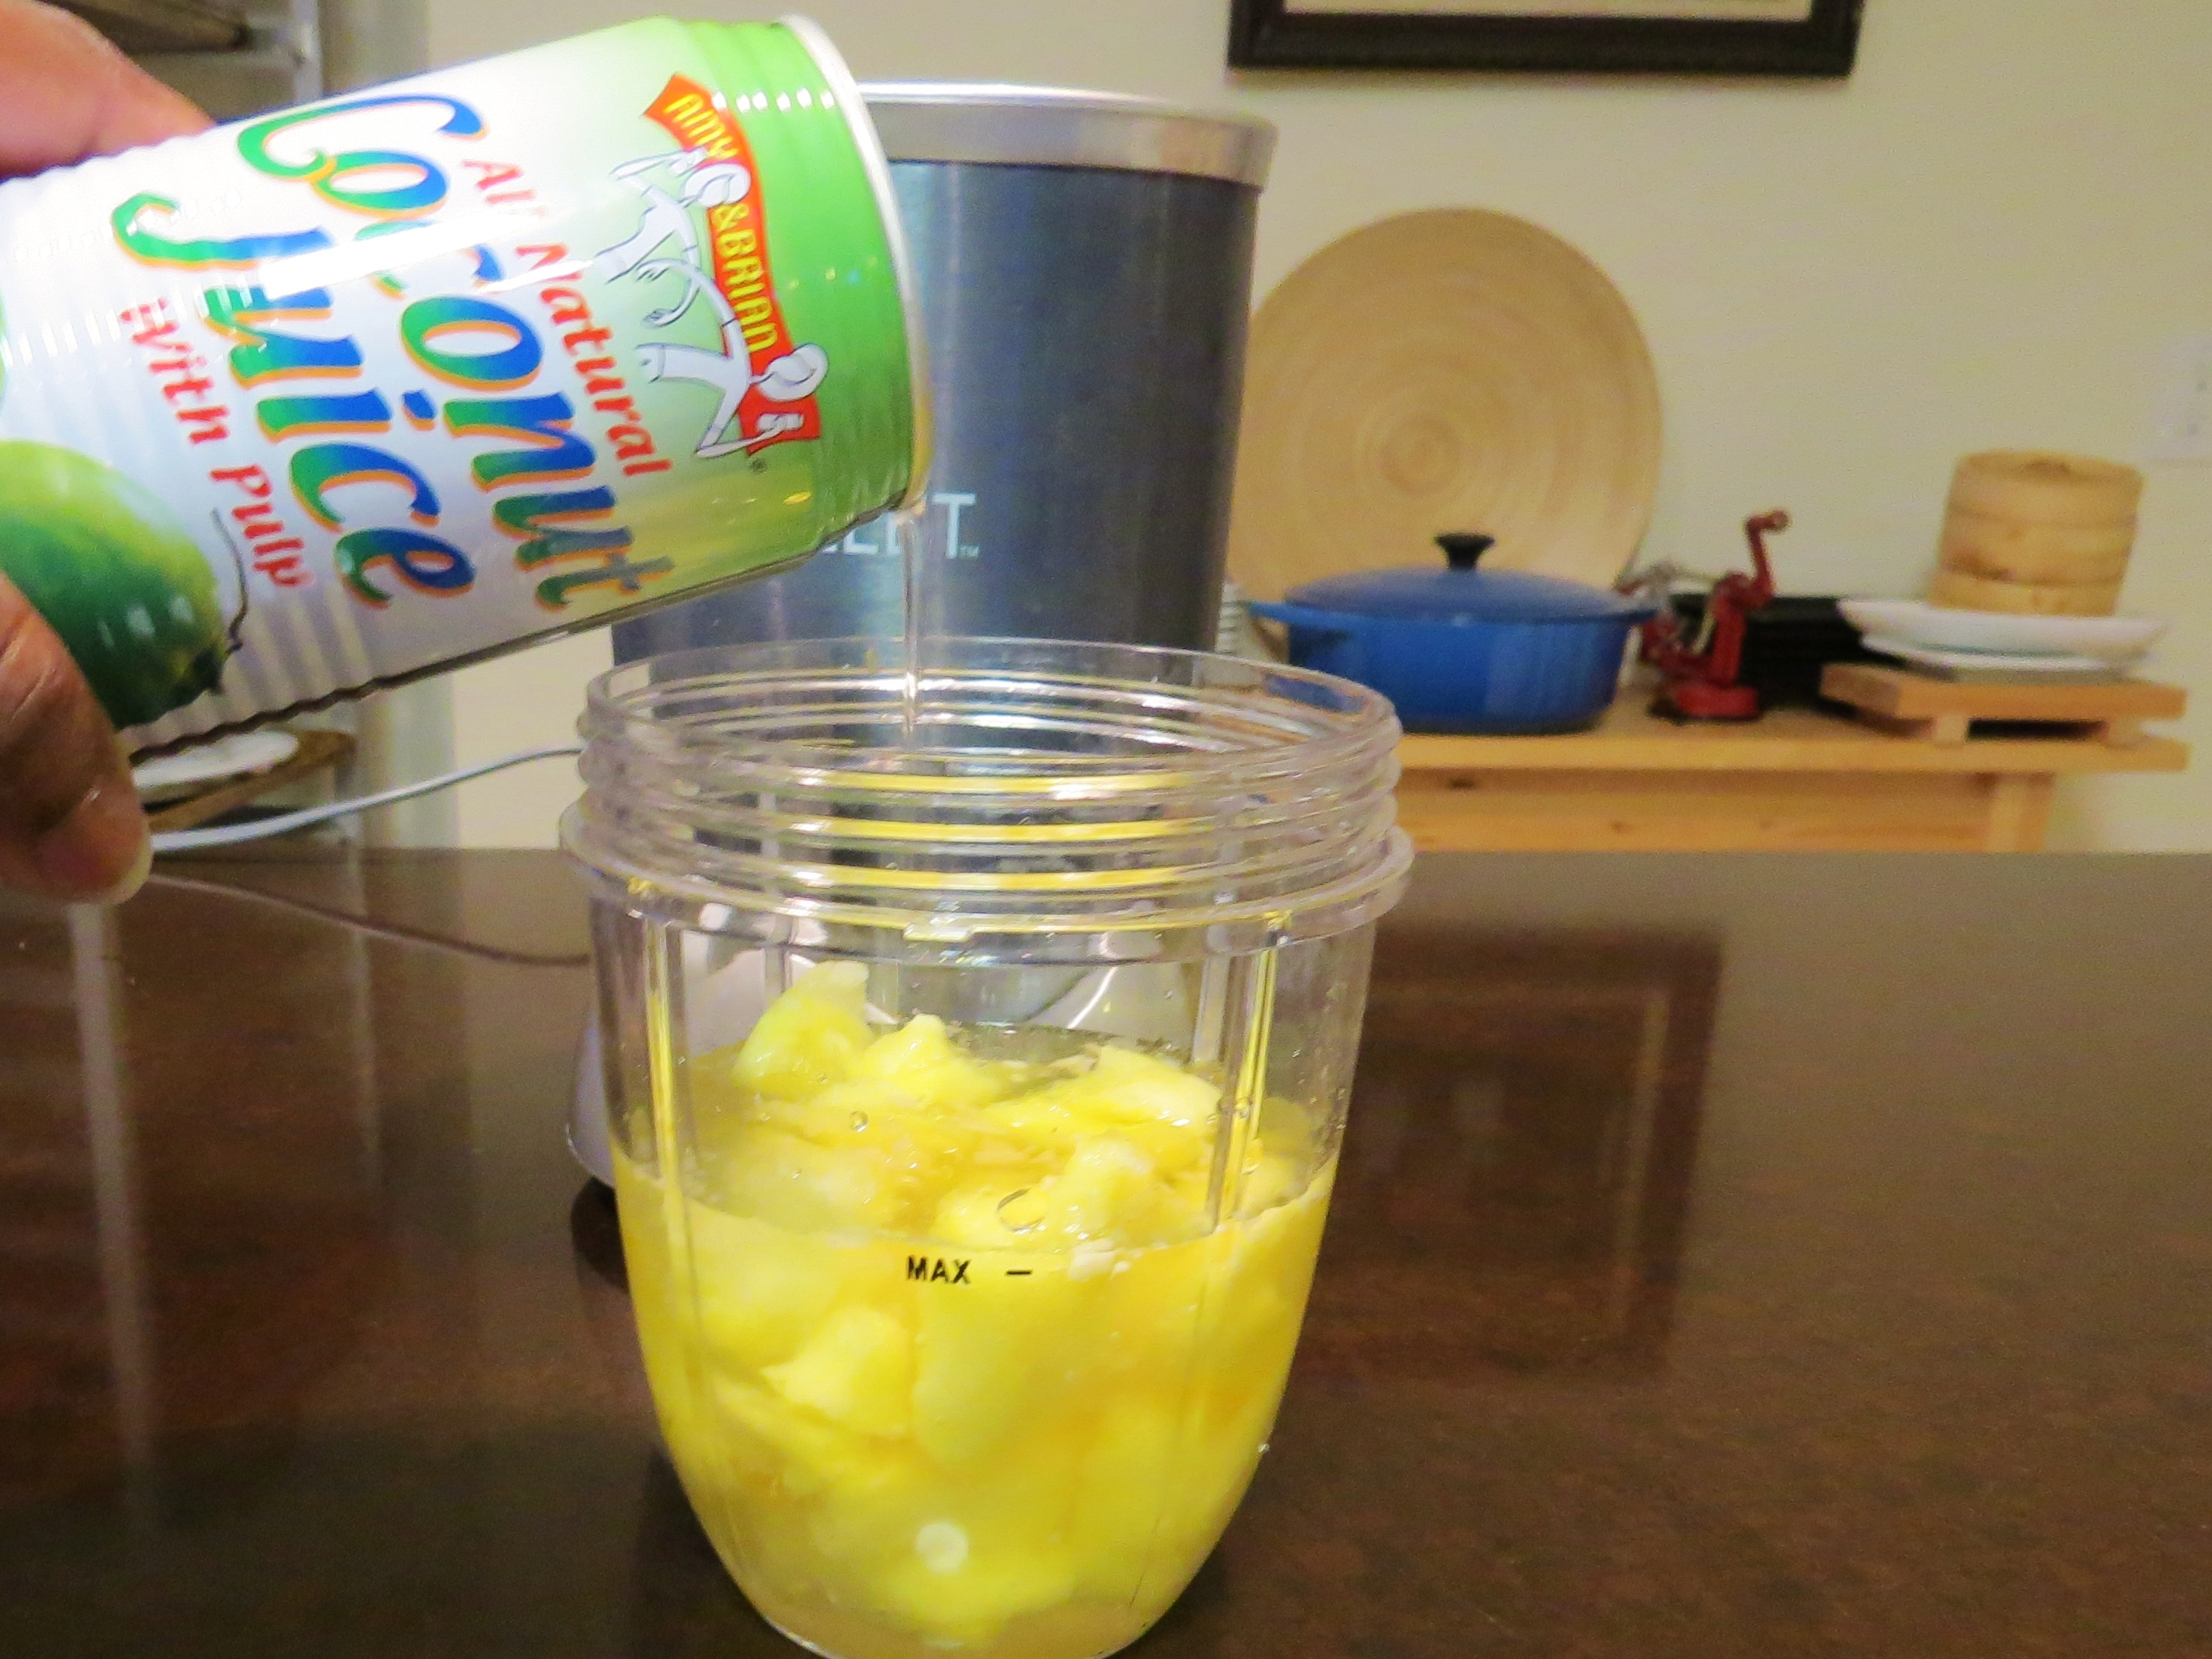 Put Frozen pineapple chunks into the Nutribullet cup up to the fill line.  Pour in Chilled coconut juice